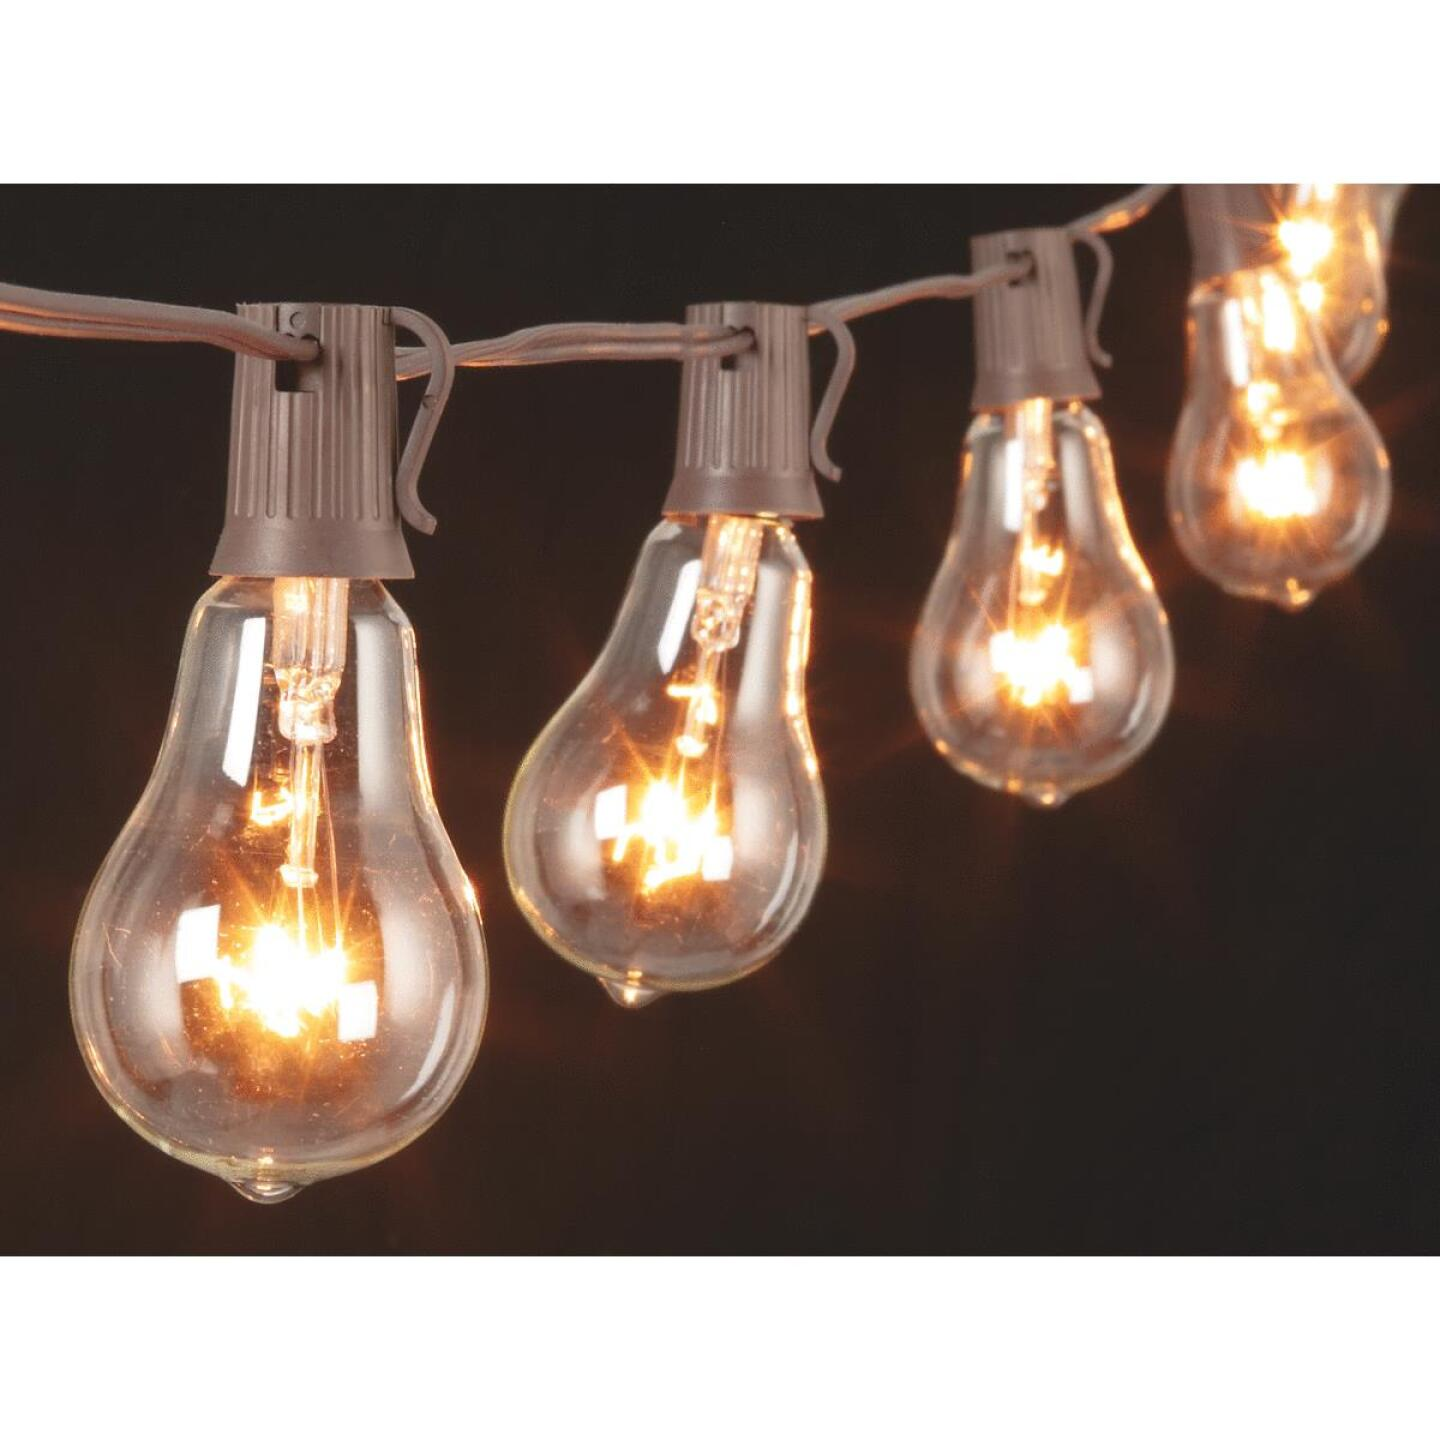 Gerson 10 Ft. 10-Light Clear Bulb String Lights Image 1